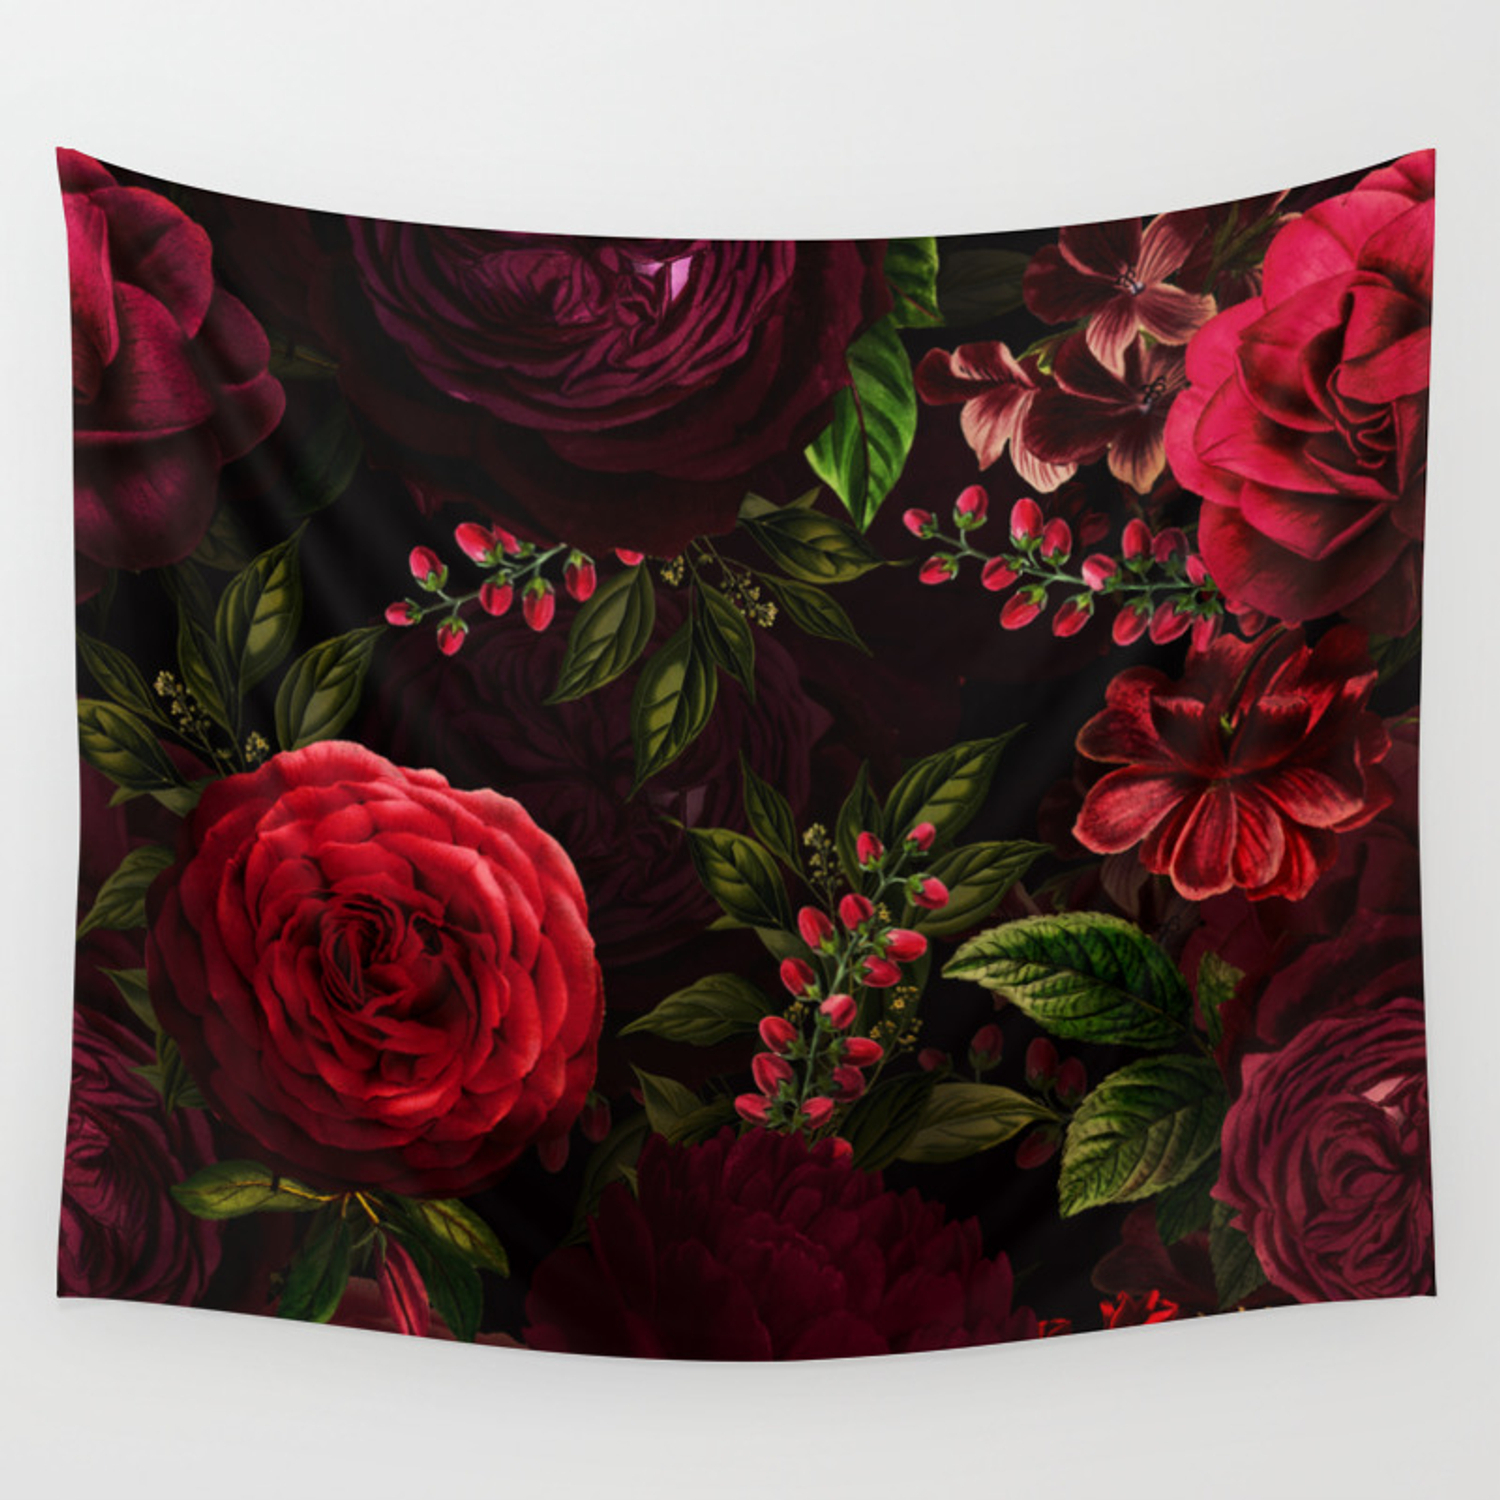 Vintage & Shabby Chic – Vintage & Shabby Chic – Mystical Night Roses Wall Tapestryvintage Love Intended For Most Recently Released Roses I Tapestries (View 8 of 20)